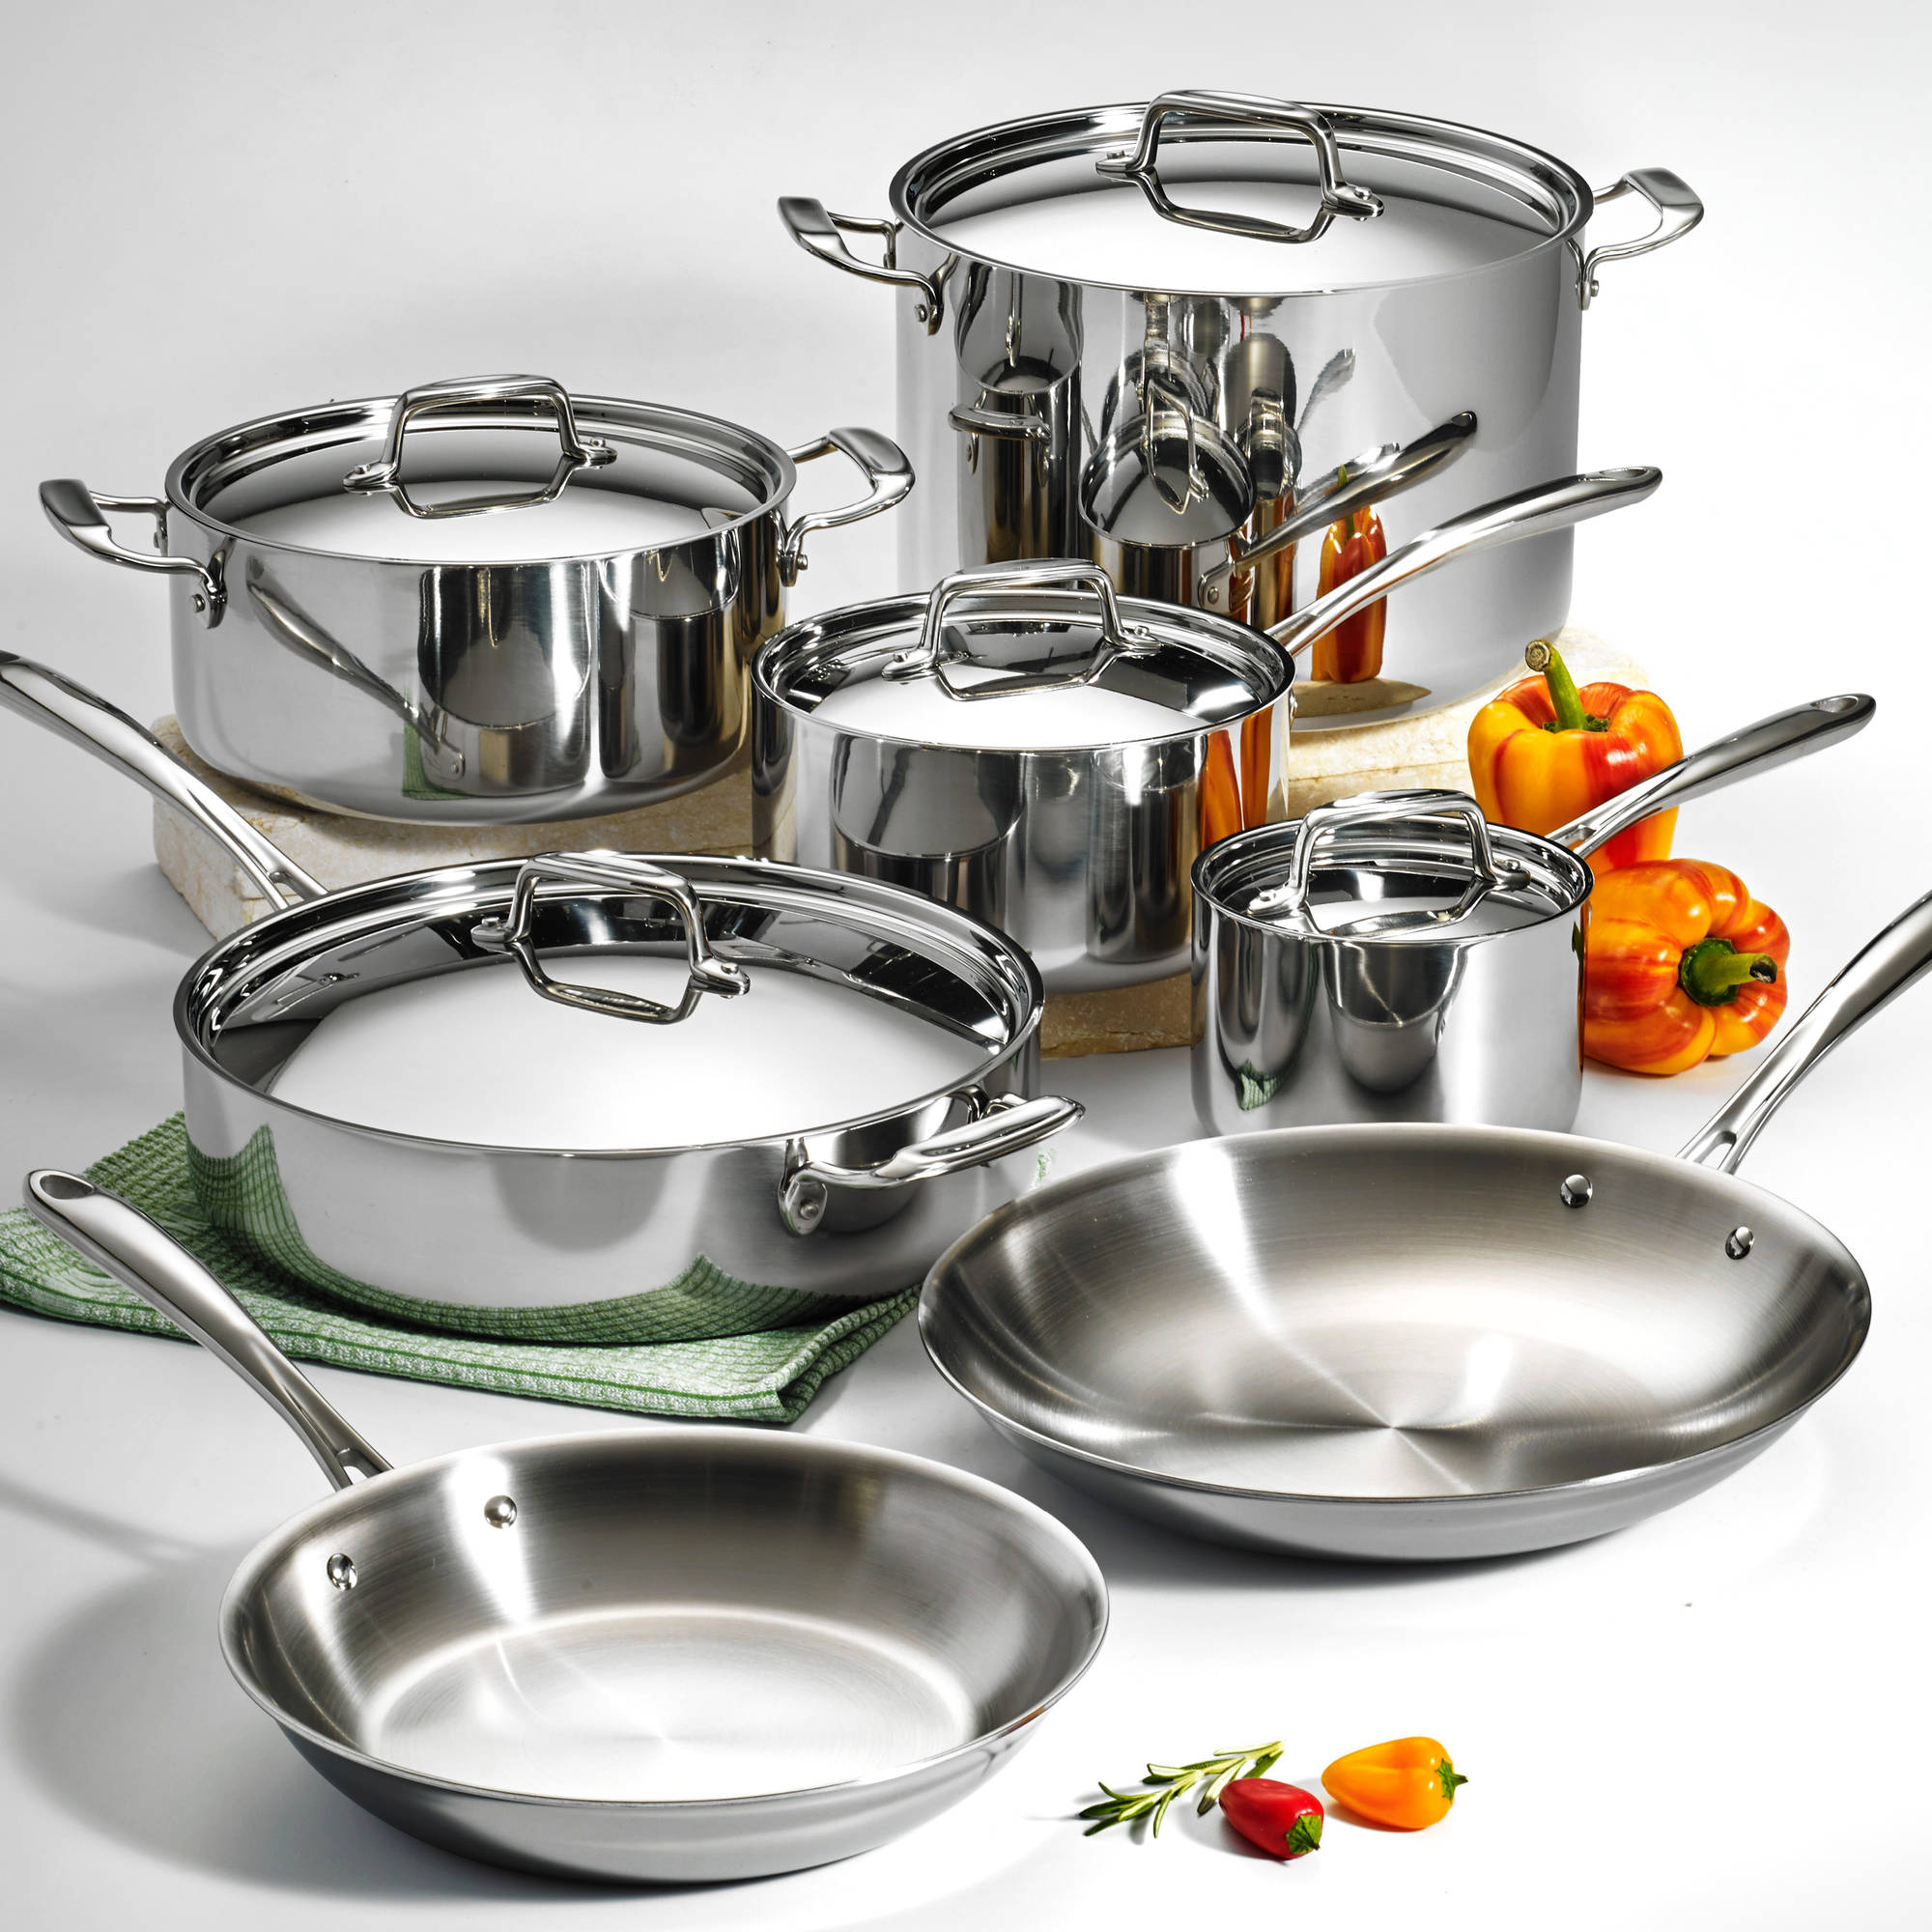 Tramontina 12-Piece Stainless Steel Tri-Ply Clad Cookware Set